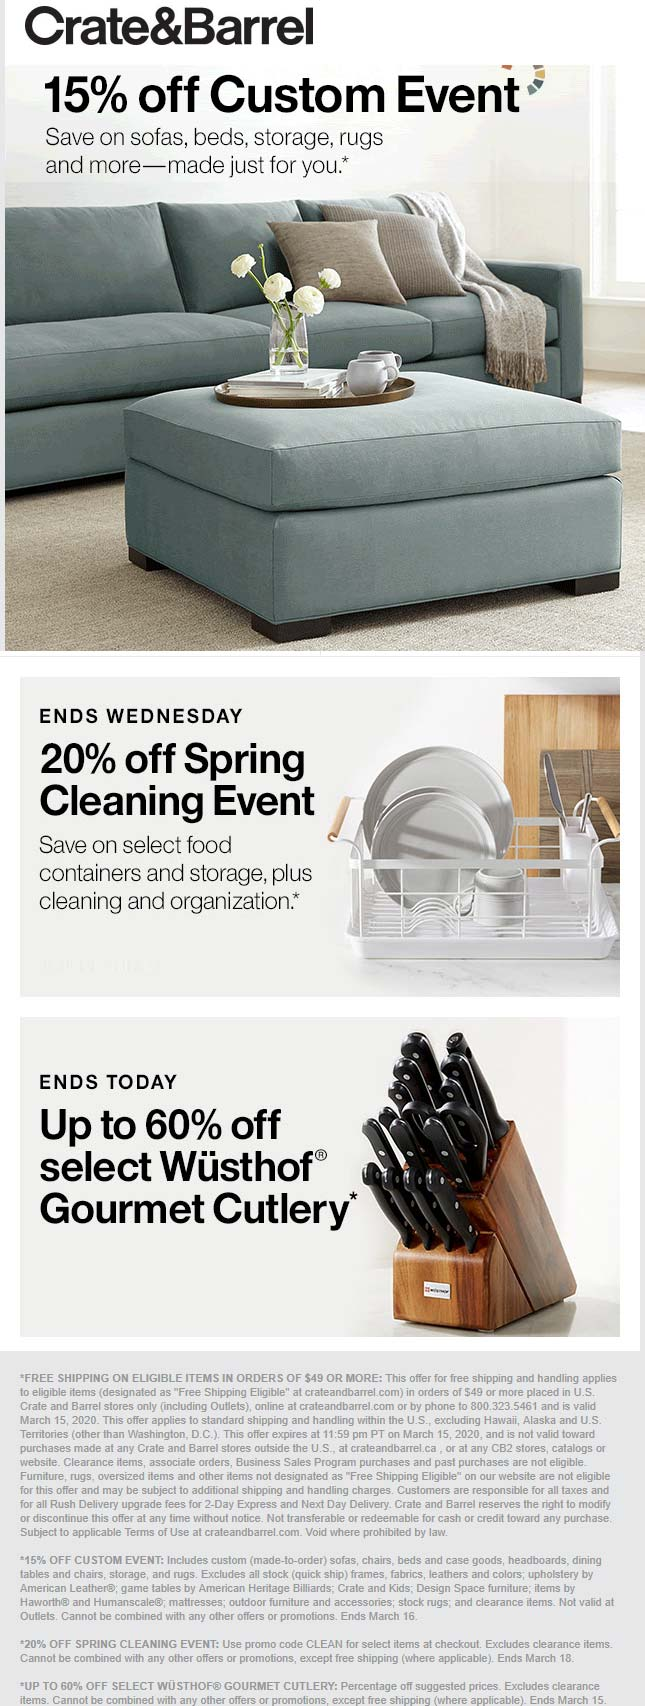 Crate & Barrel coupons & promo code for [April 2020]